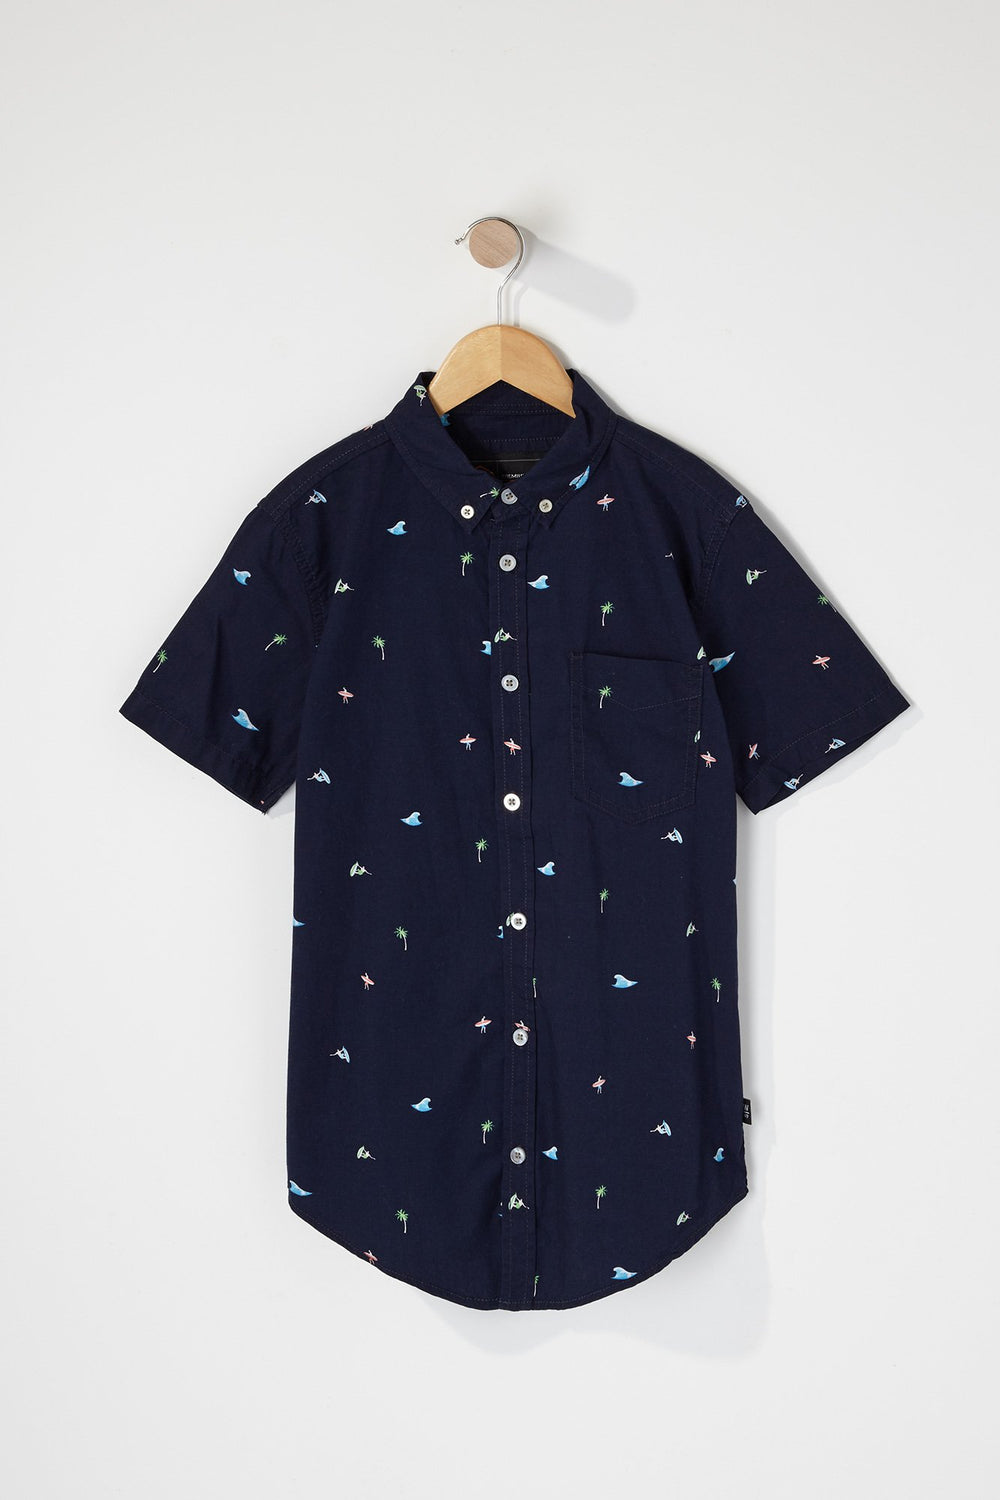 West49 Boys Tropical Ditsy Print Button Up Shirt Navy